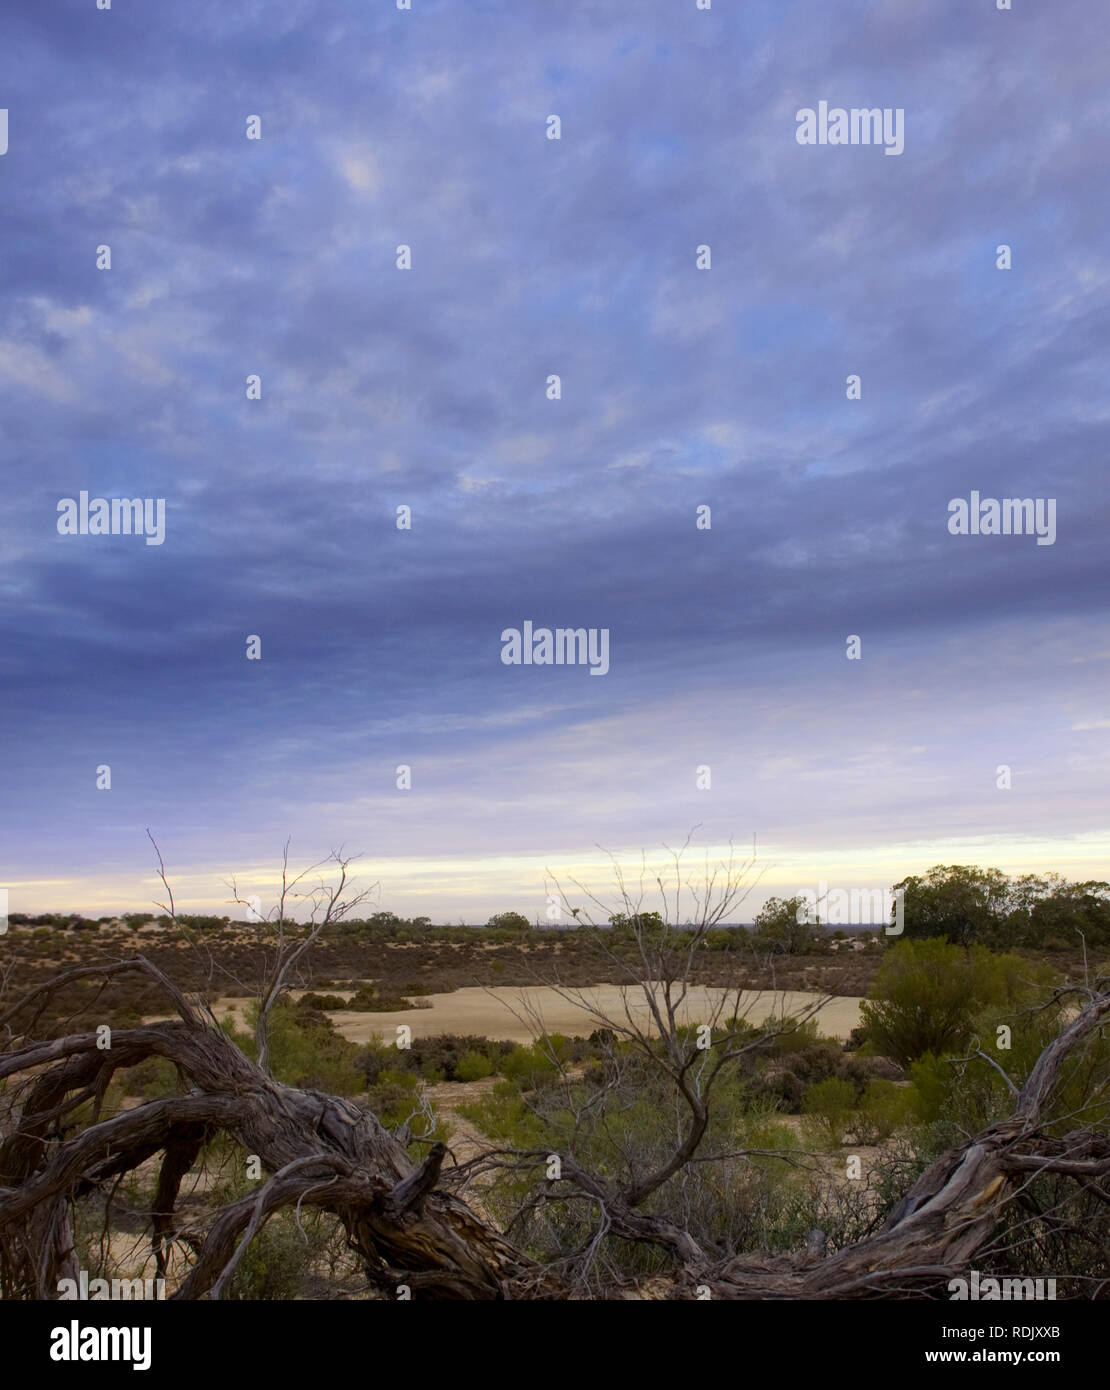 Storm clouds over a dry Emu Lake, Menindee Lakes, New South Wales, Australia - Stock Image